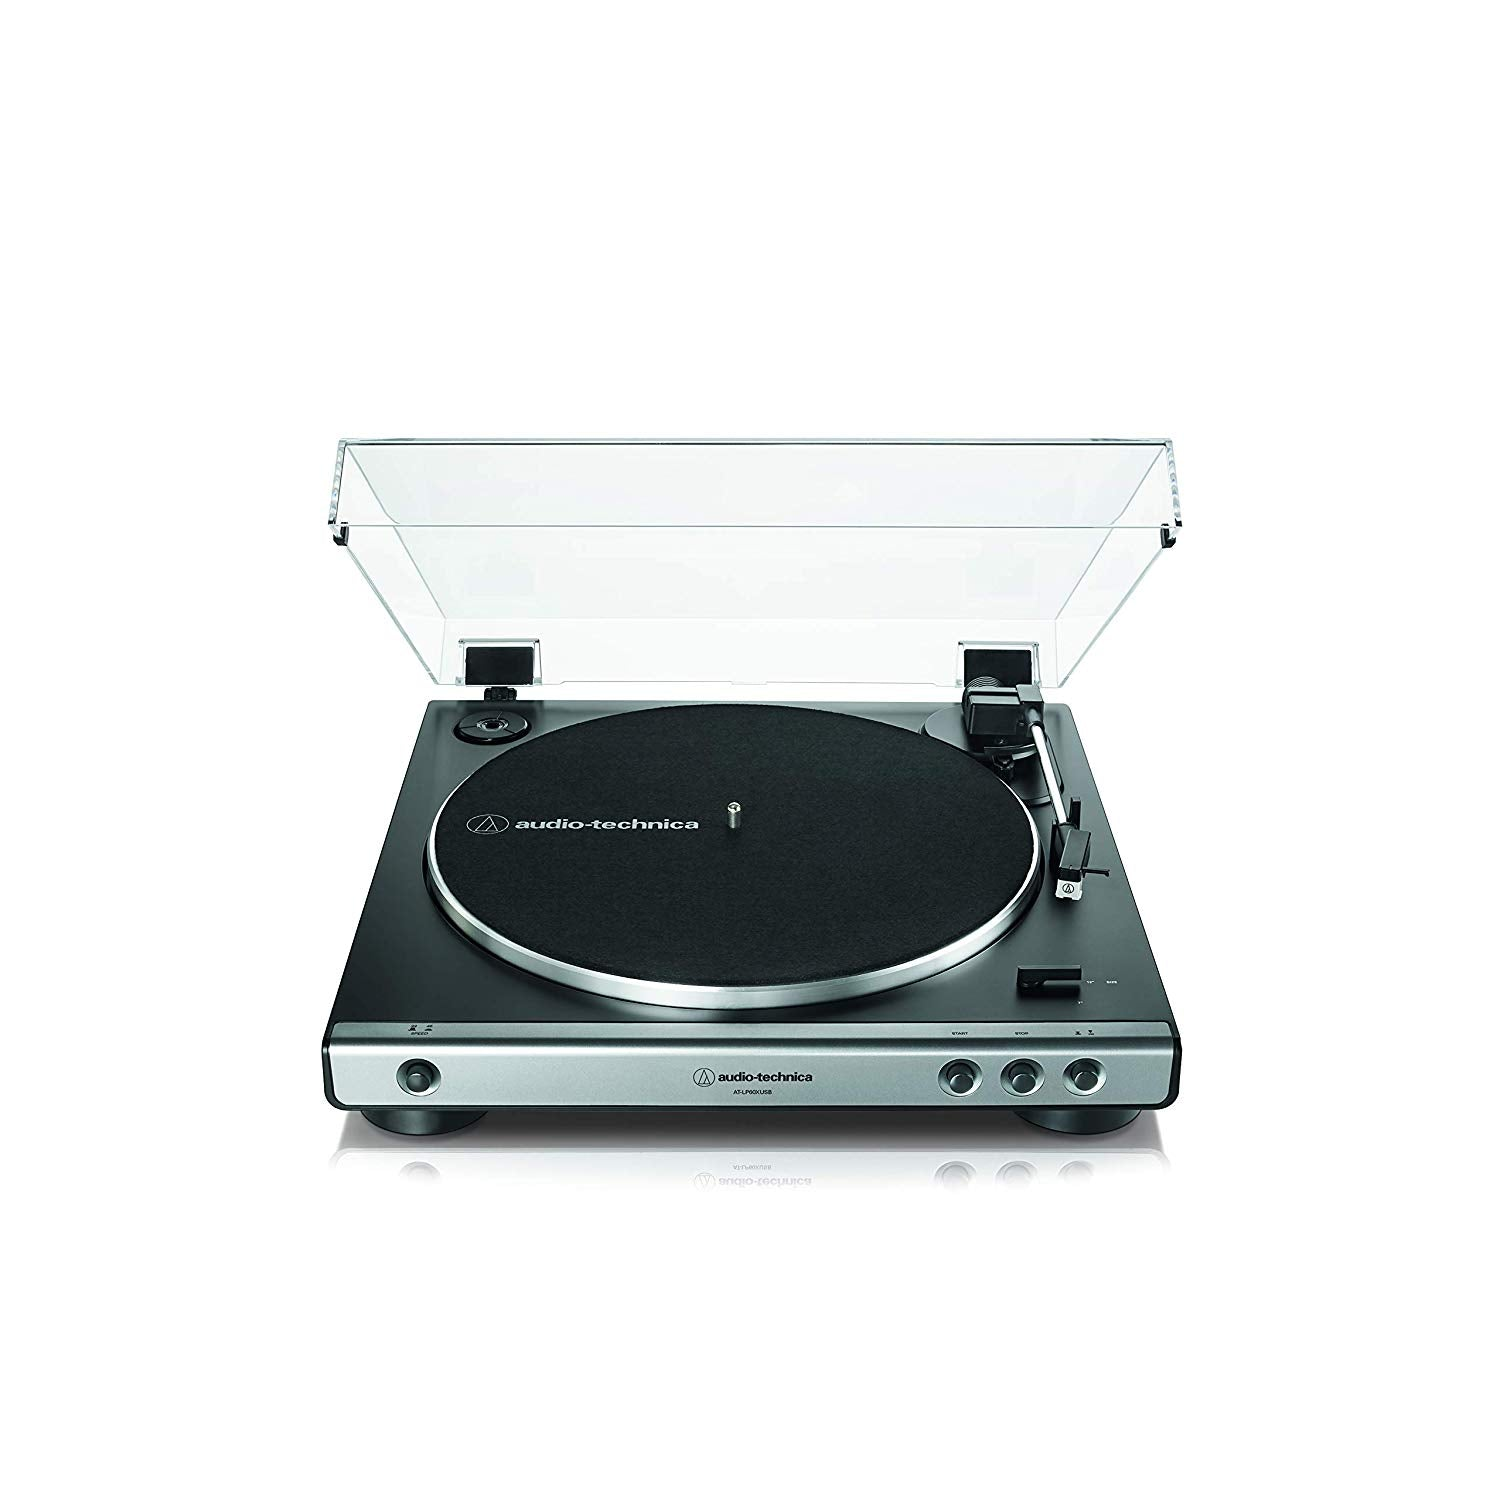 AUDIO TECHNICA 60XUSB TURNTABLE [TECH & TURNTABLES] GOLDEN DISCS